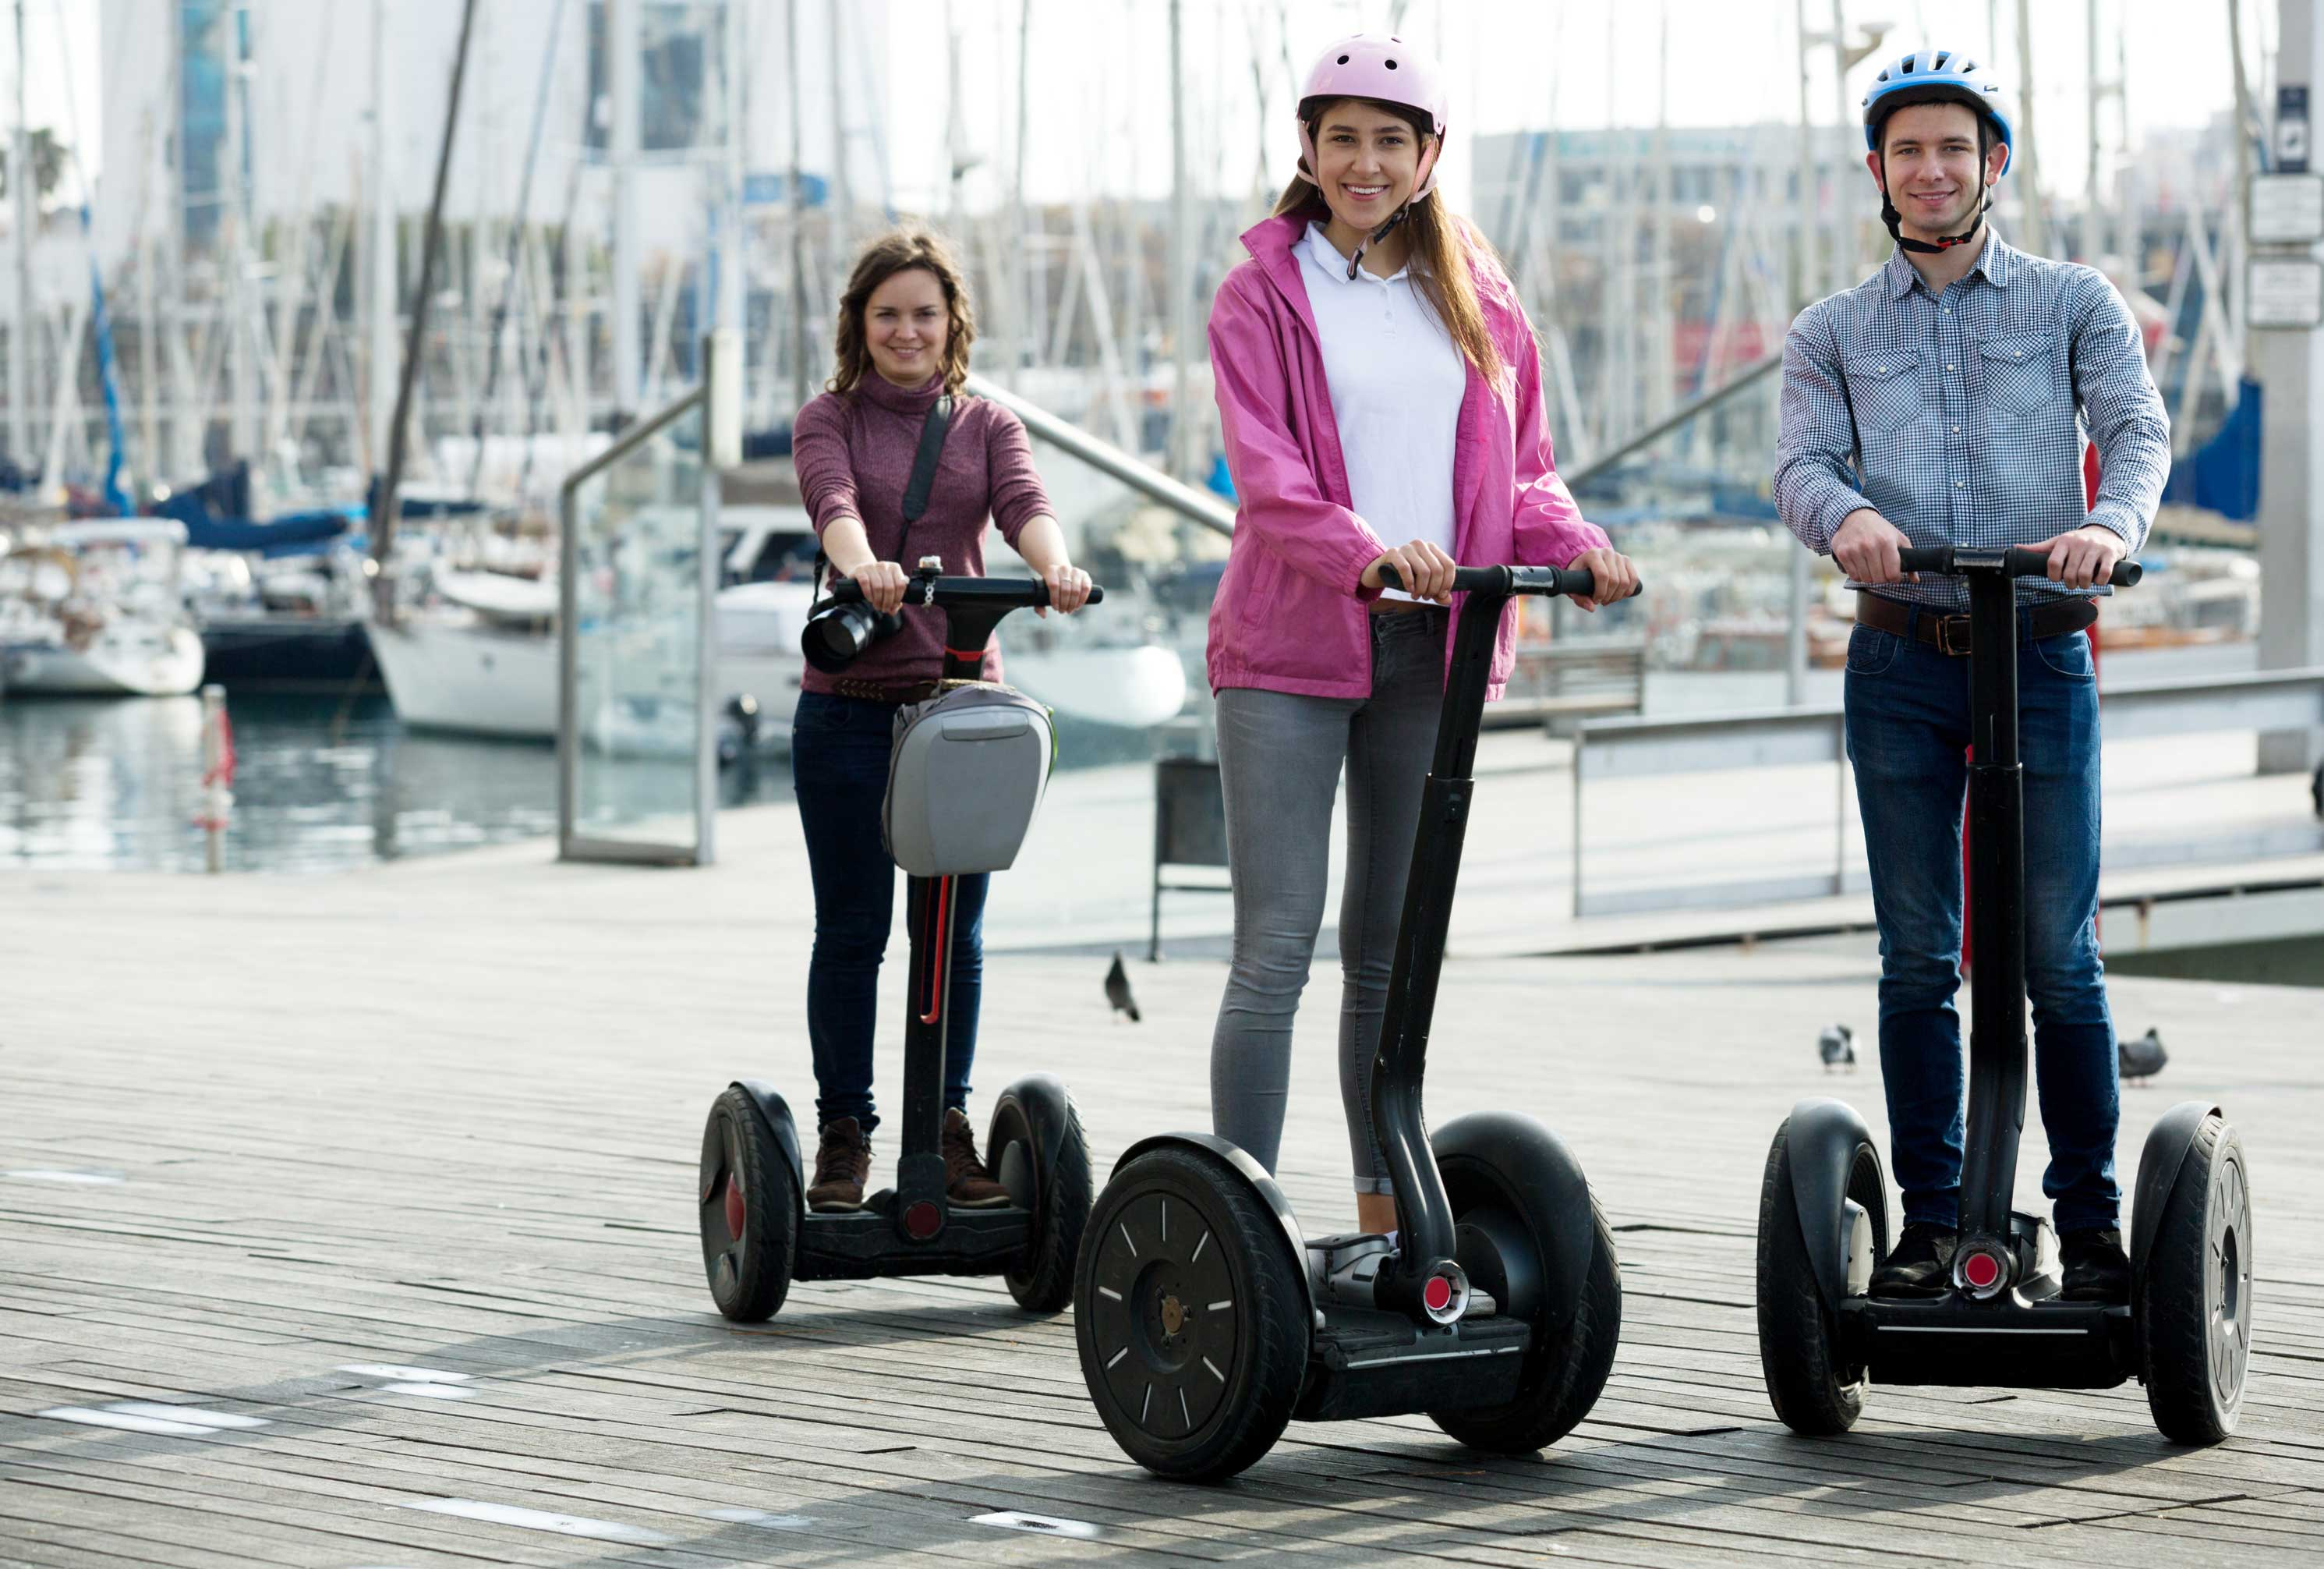 photodune-16501874-girls-and-guy-traveling-through-city-by-segways-l